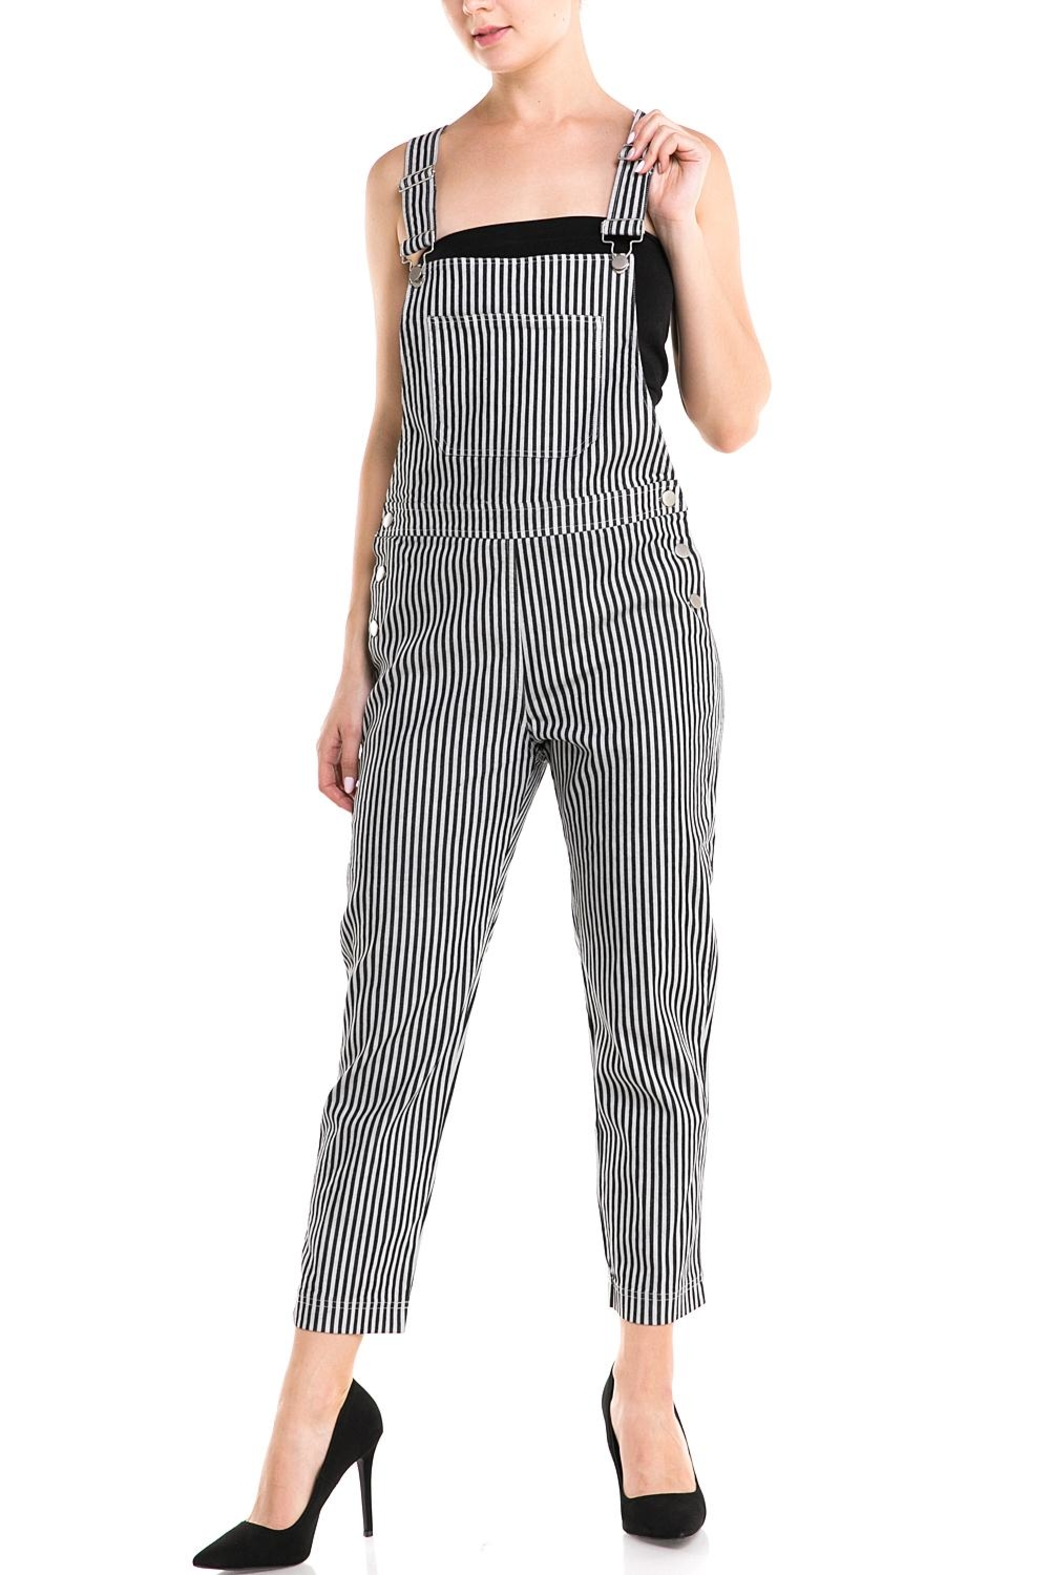 43995647f103f storia Striped Jumpsuit from New York by Dor L Dor — Shoptiques